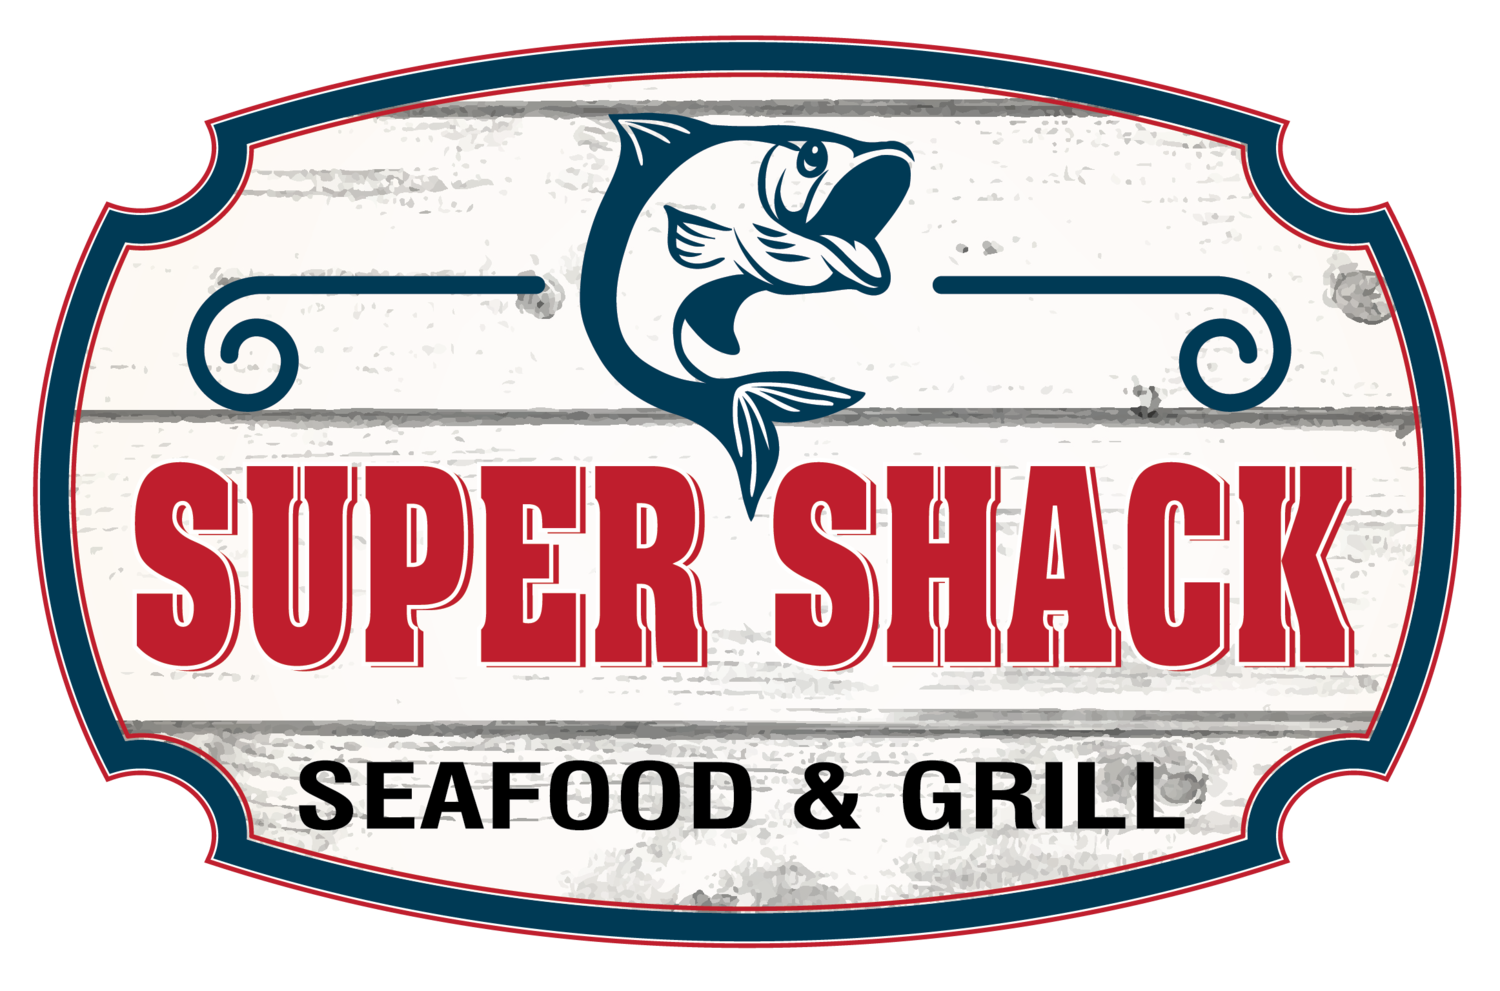 Super Shack Seafood & Grill